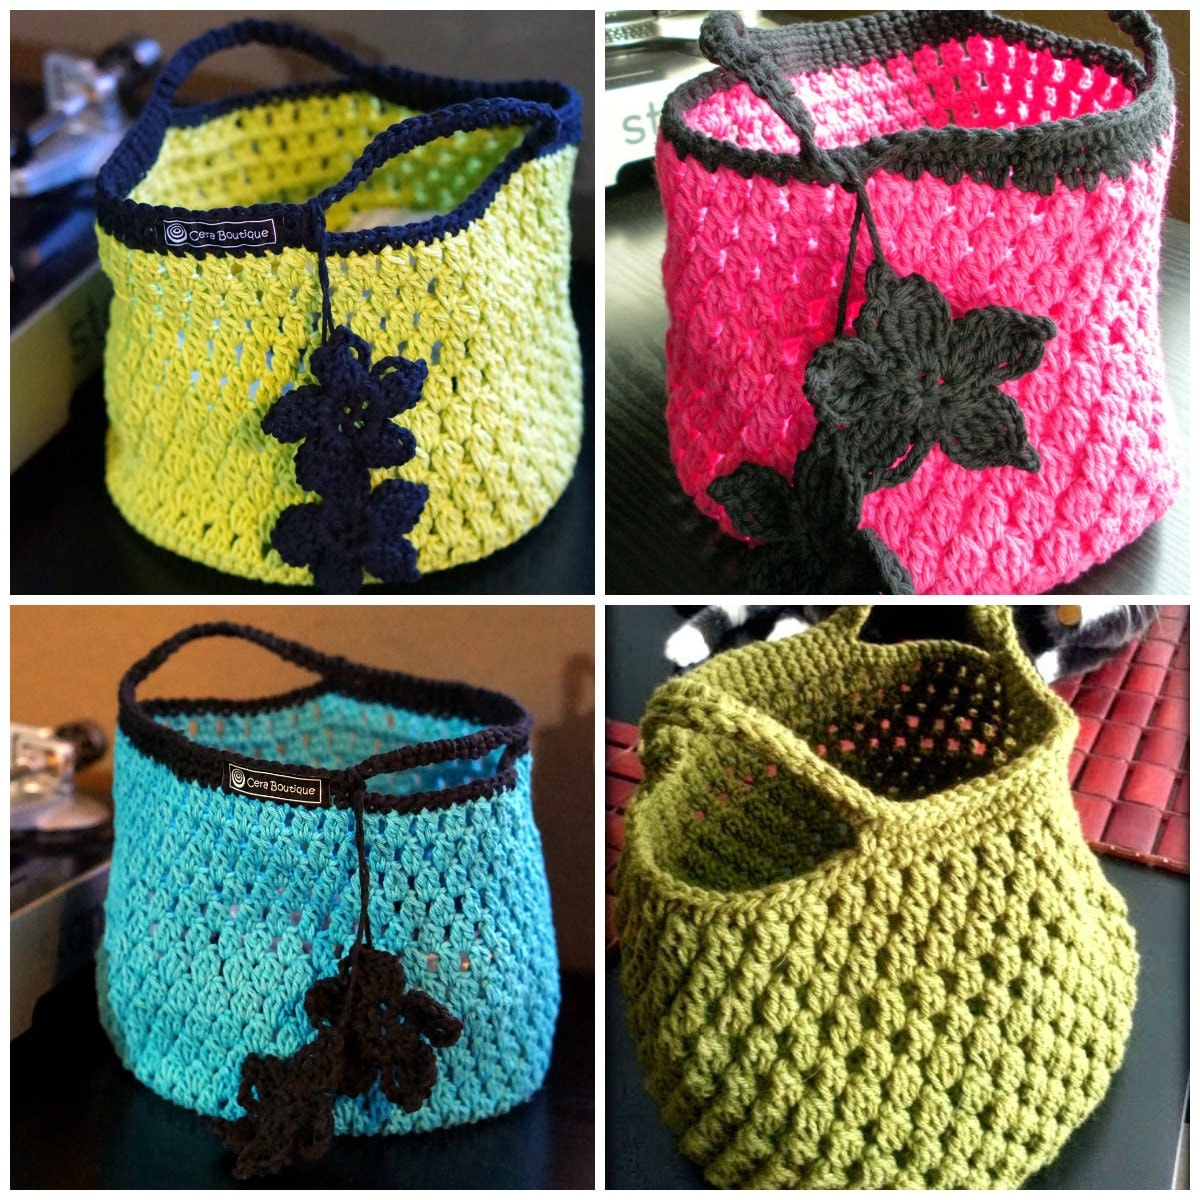 Crochet Small Tote Bag Pattern : Instant Download PDF Easy Crochet Pattern Cotton Crochet